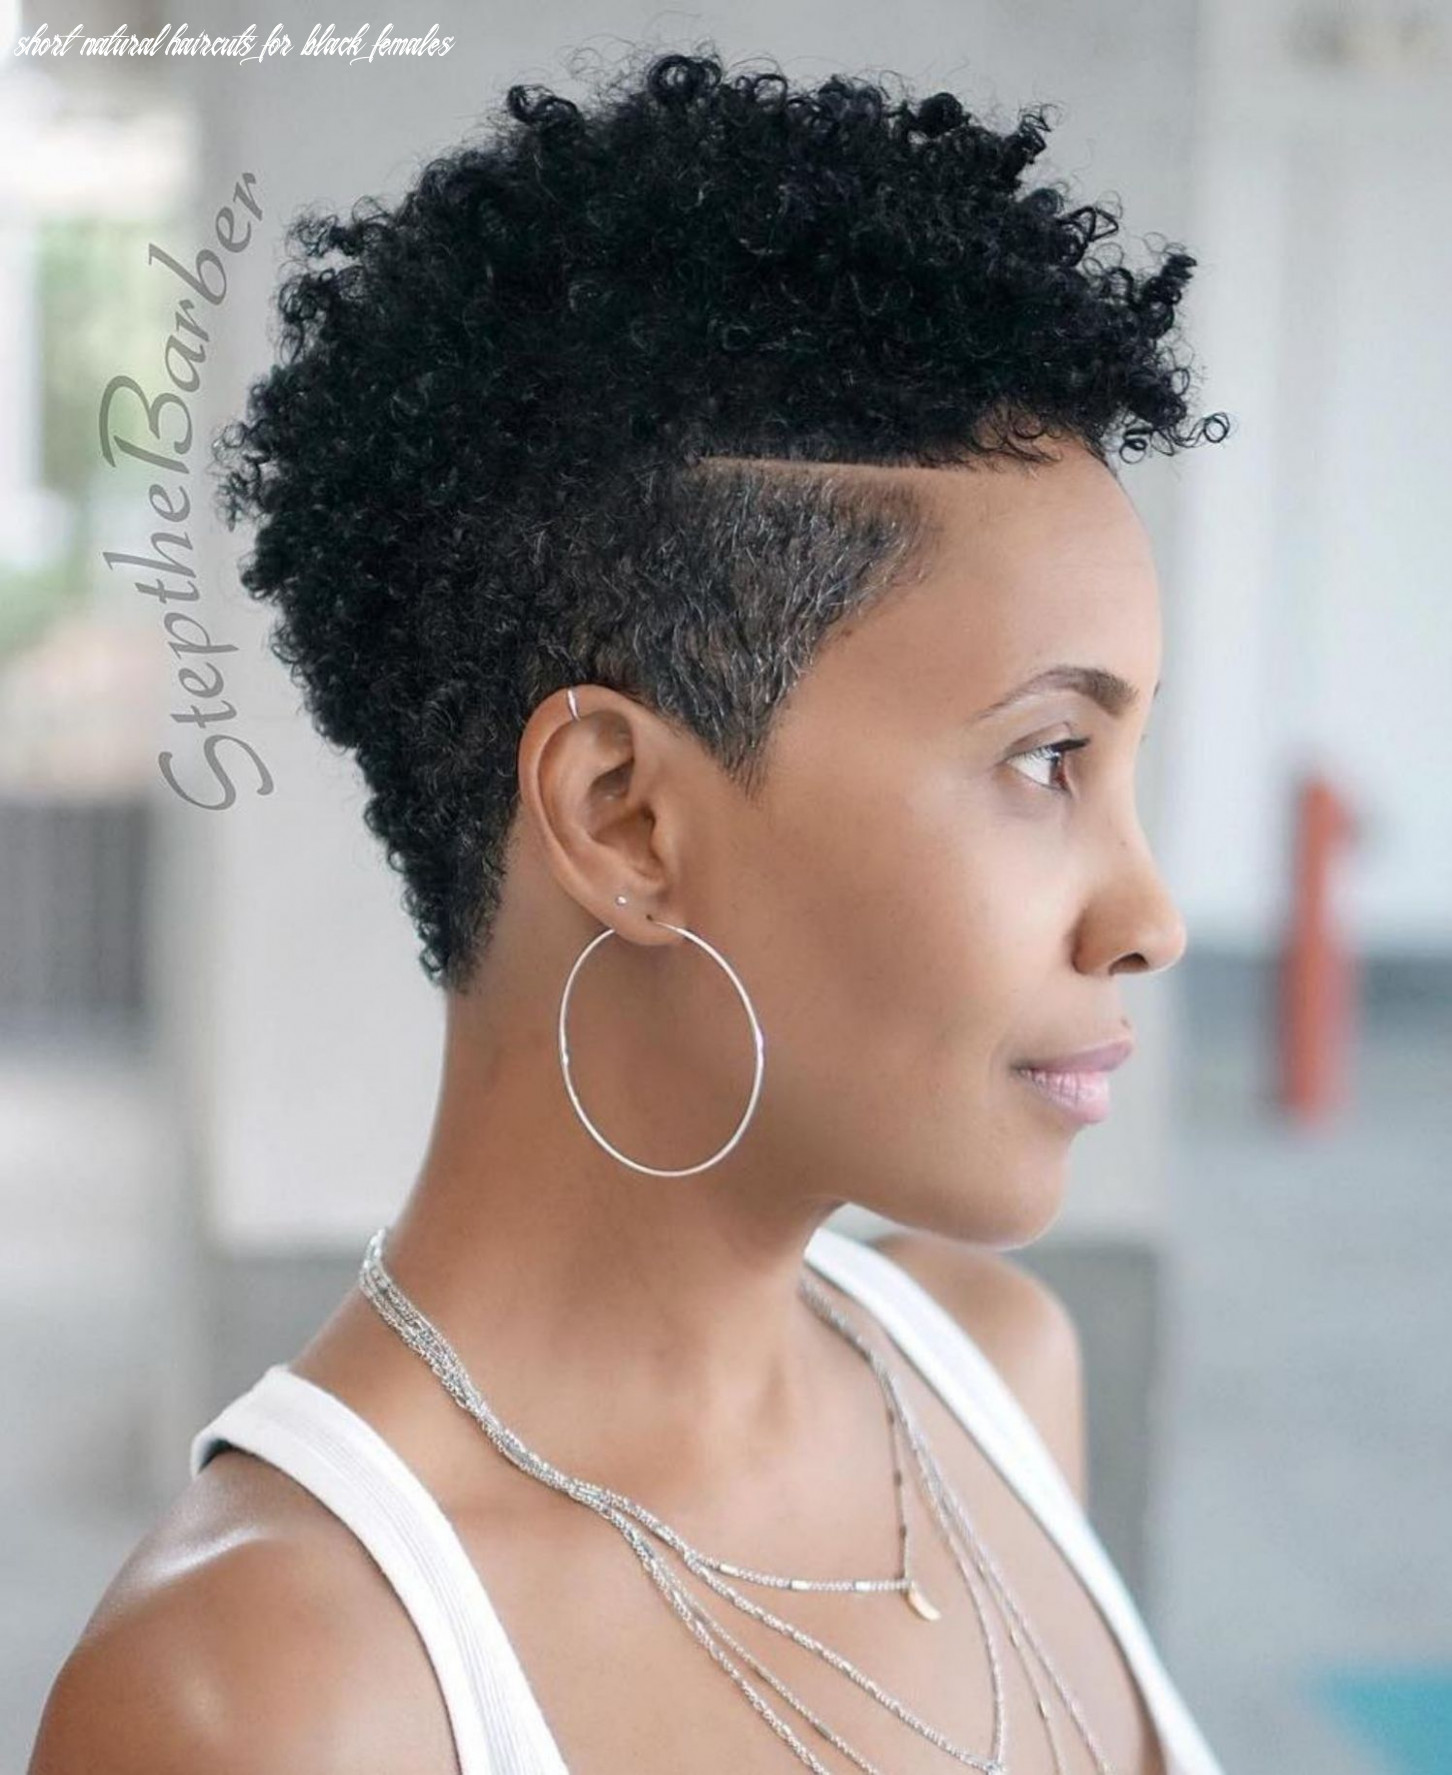 11 great short hairstyles for black women | natural hair styles